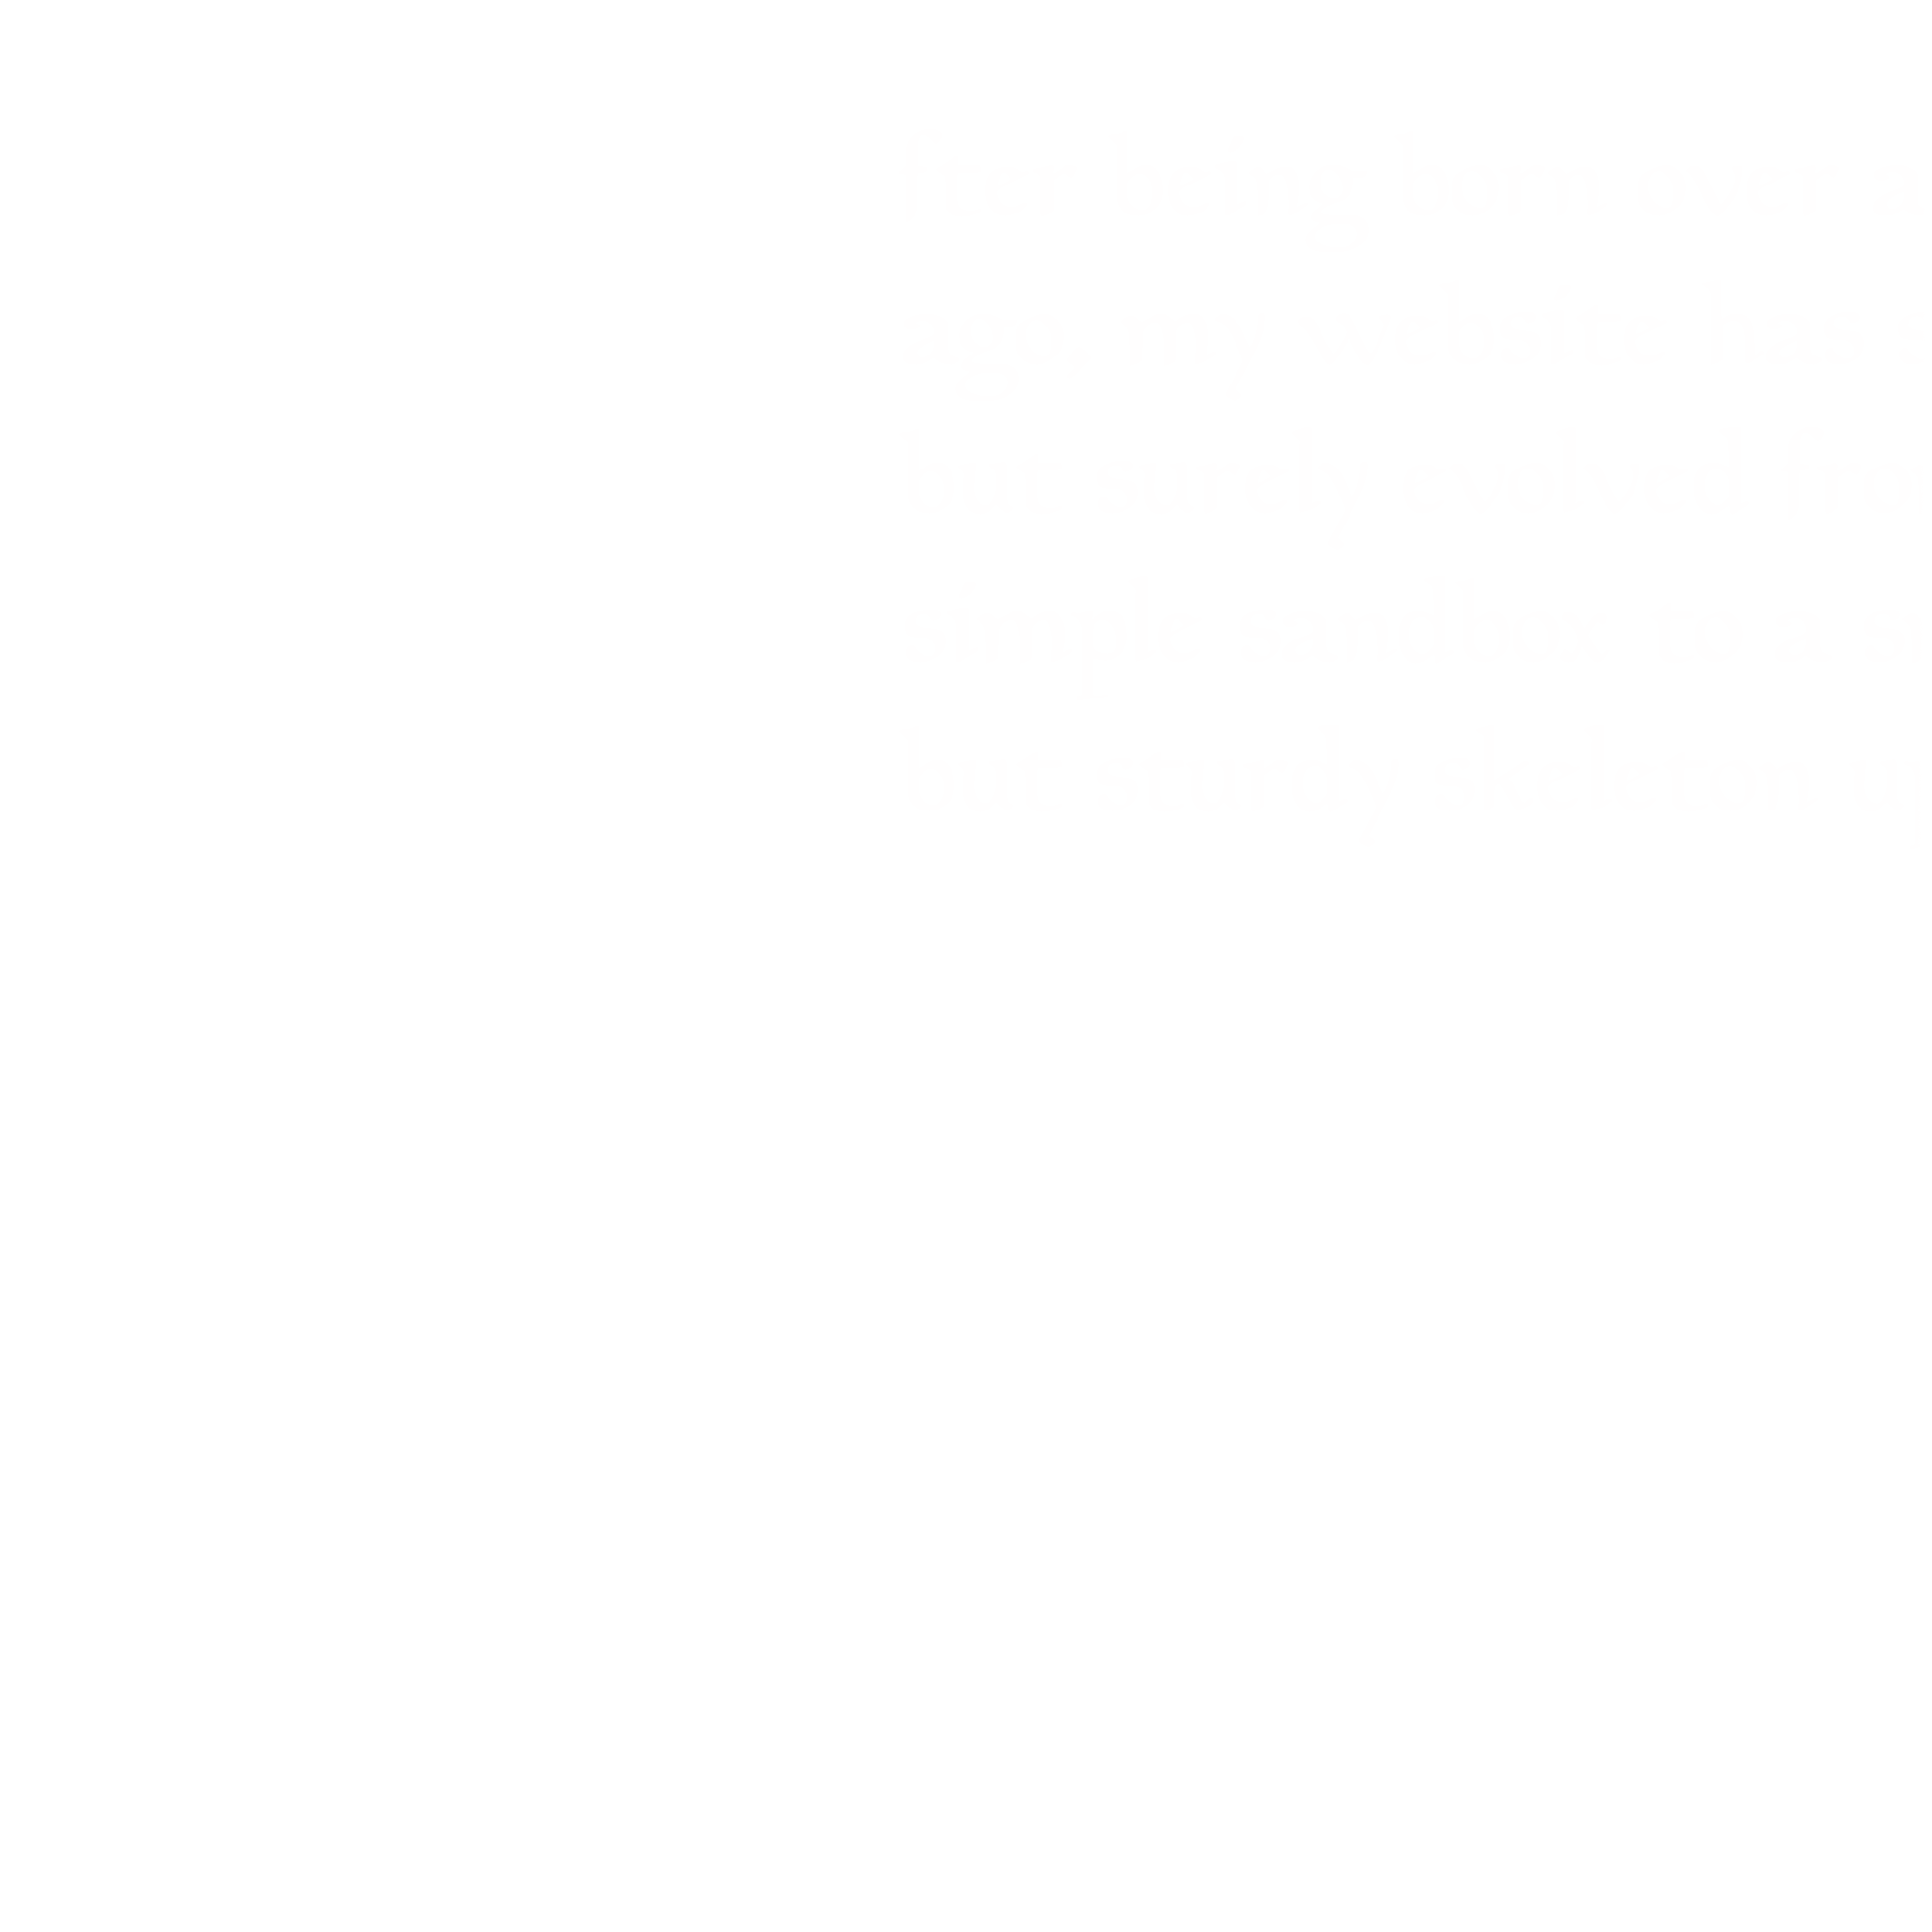 A sketch of the first paragraph of this blog post, rendered with fancy medieval script and an elaborate floral illuminated 'A' at the head of the paragraph.